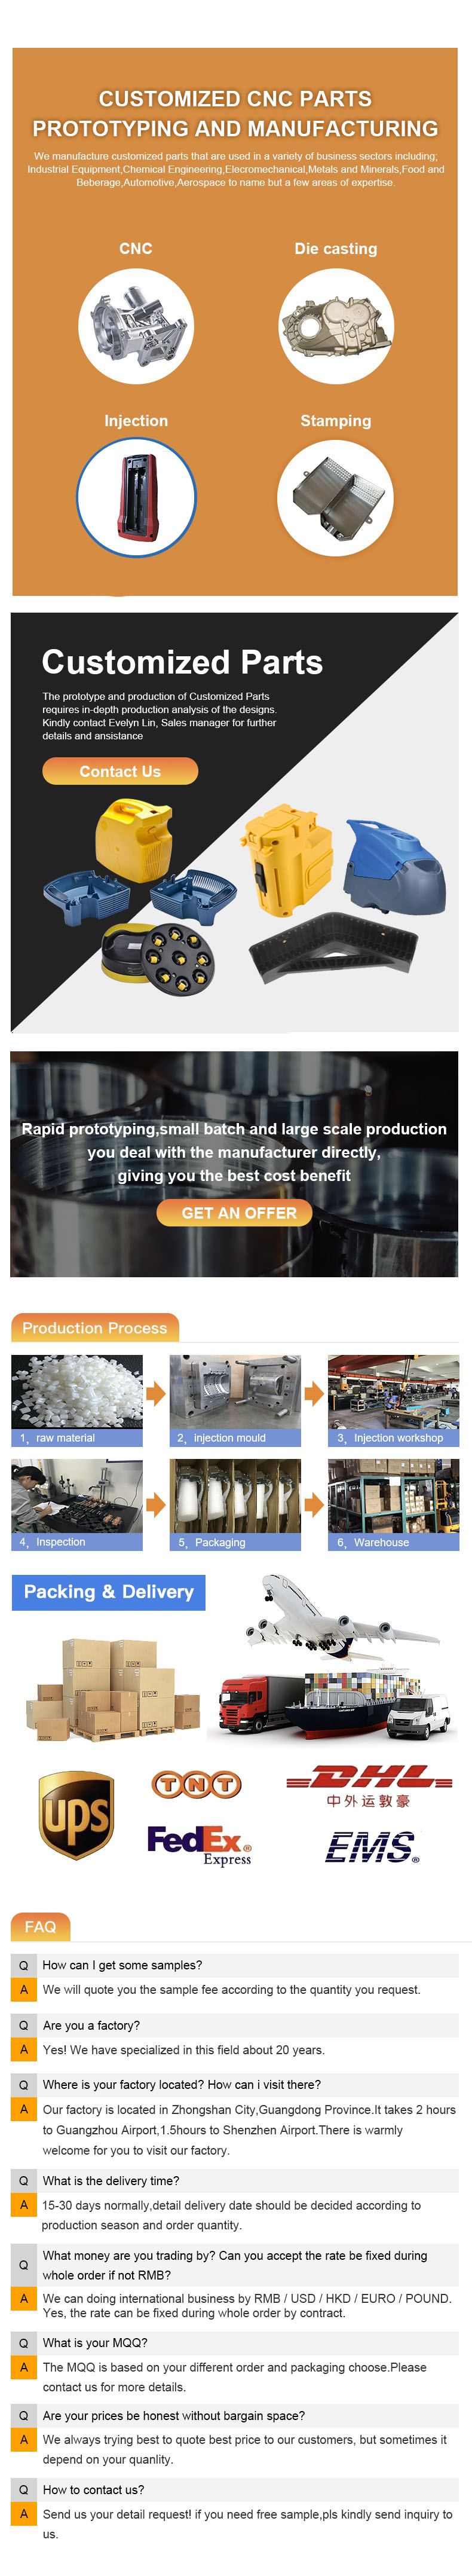 plastic-injection-parts-manufacturers,CNC MACHINING PARTS,PRECISION CNC MACHINING PARTS,CNC ALUMINUM PARTS,Machined Products,CNC Machined Products,BoYang Hardware Products